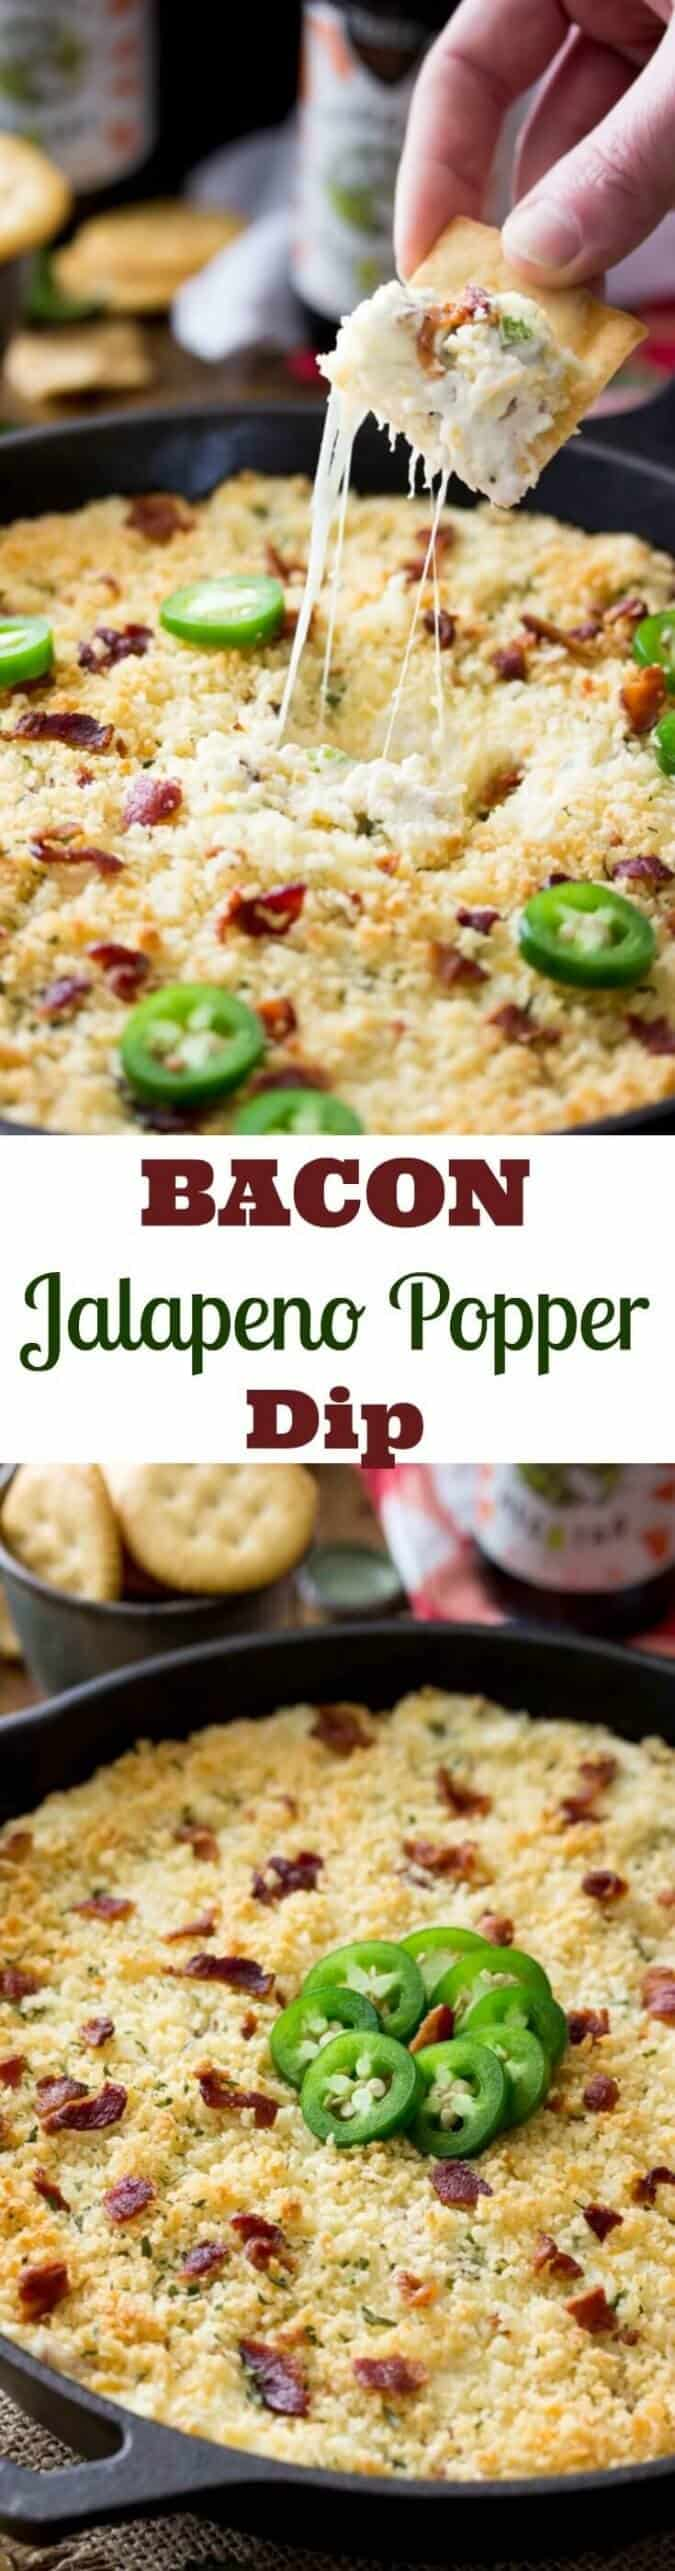 Bacon Jalapeno Popper Dip || Sugar Spun Run